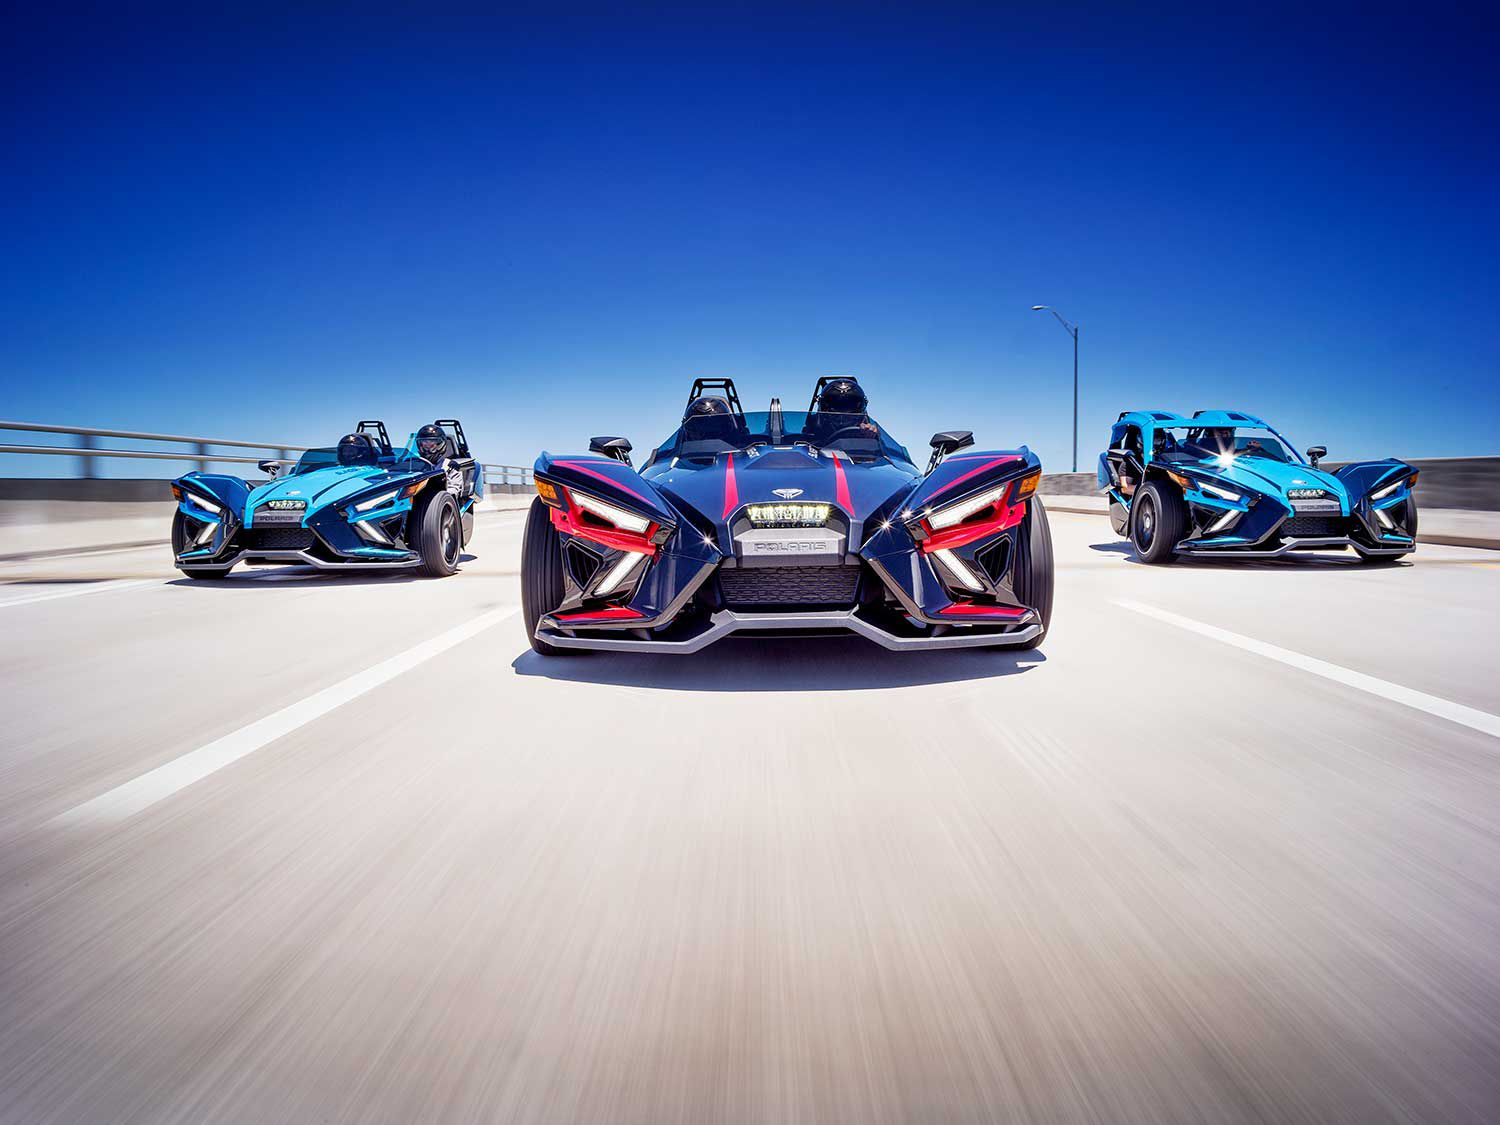 The latest Slingshot's aggro styling is a tad less controversial—but still distinctive—in the updated lineup.